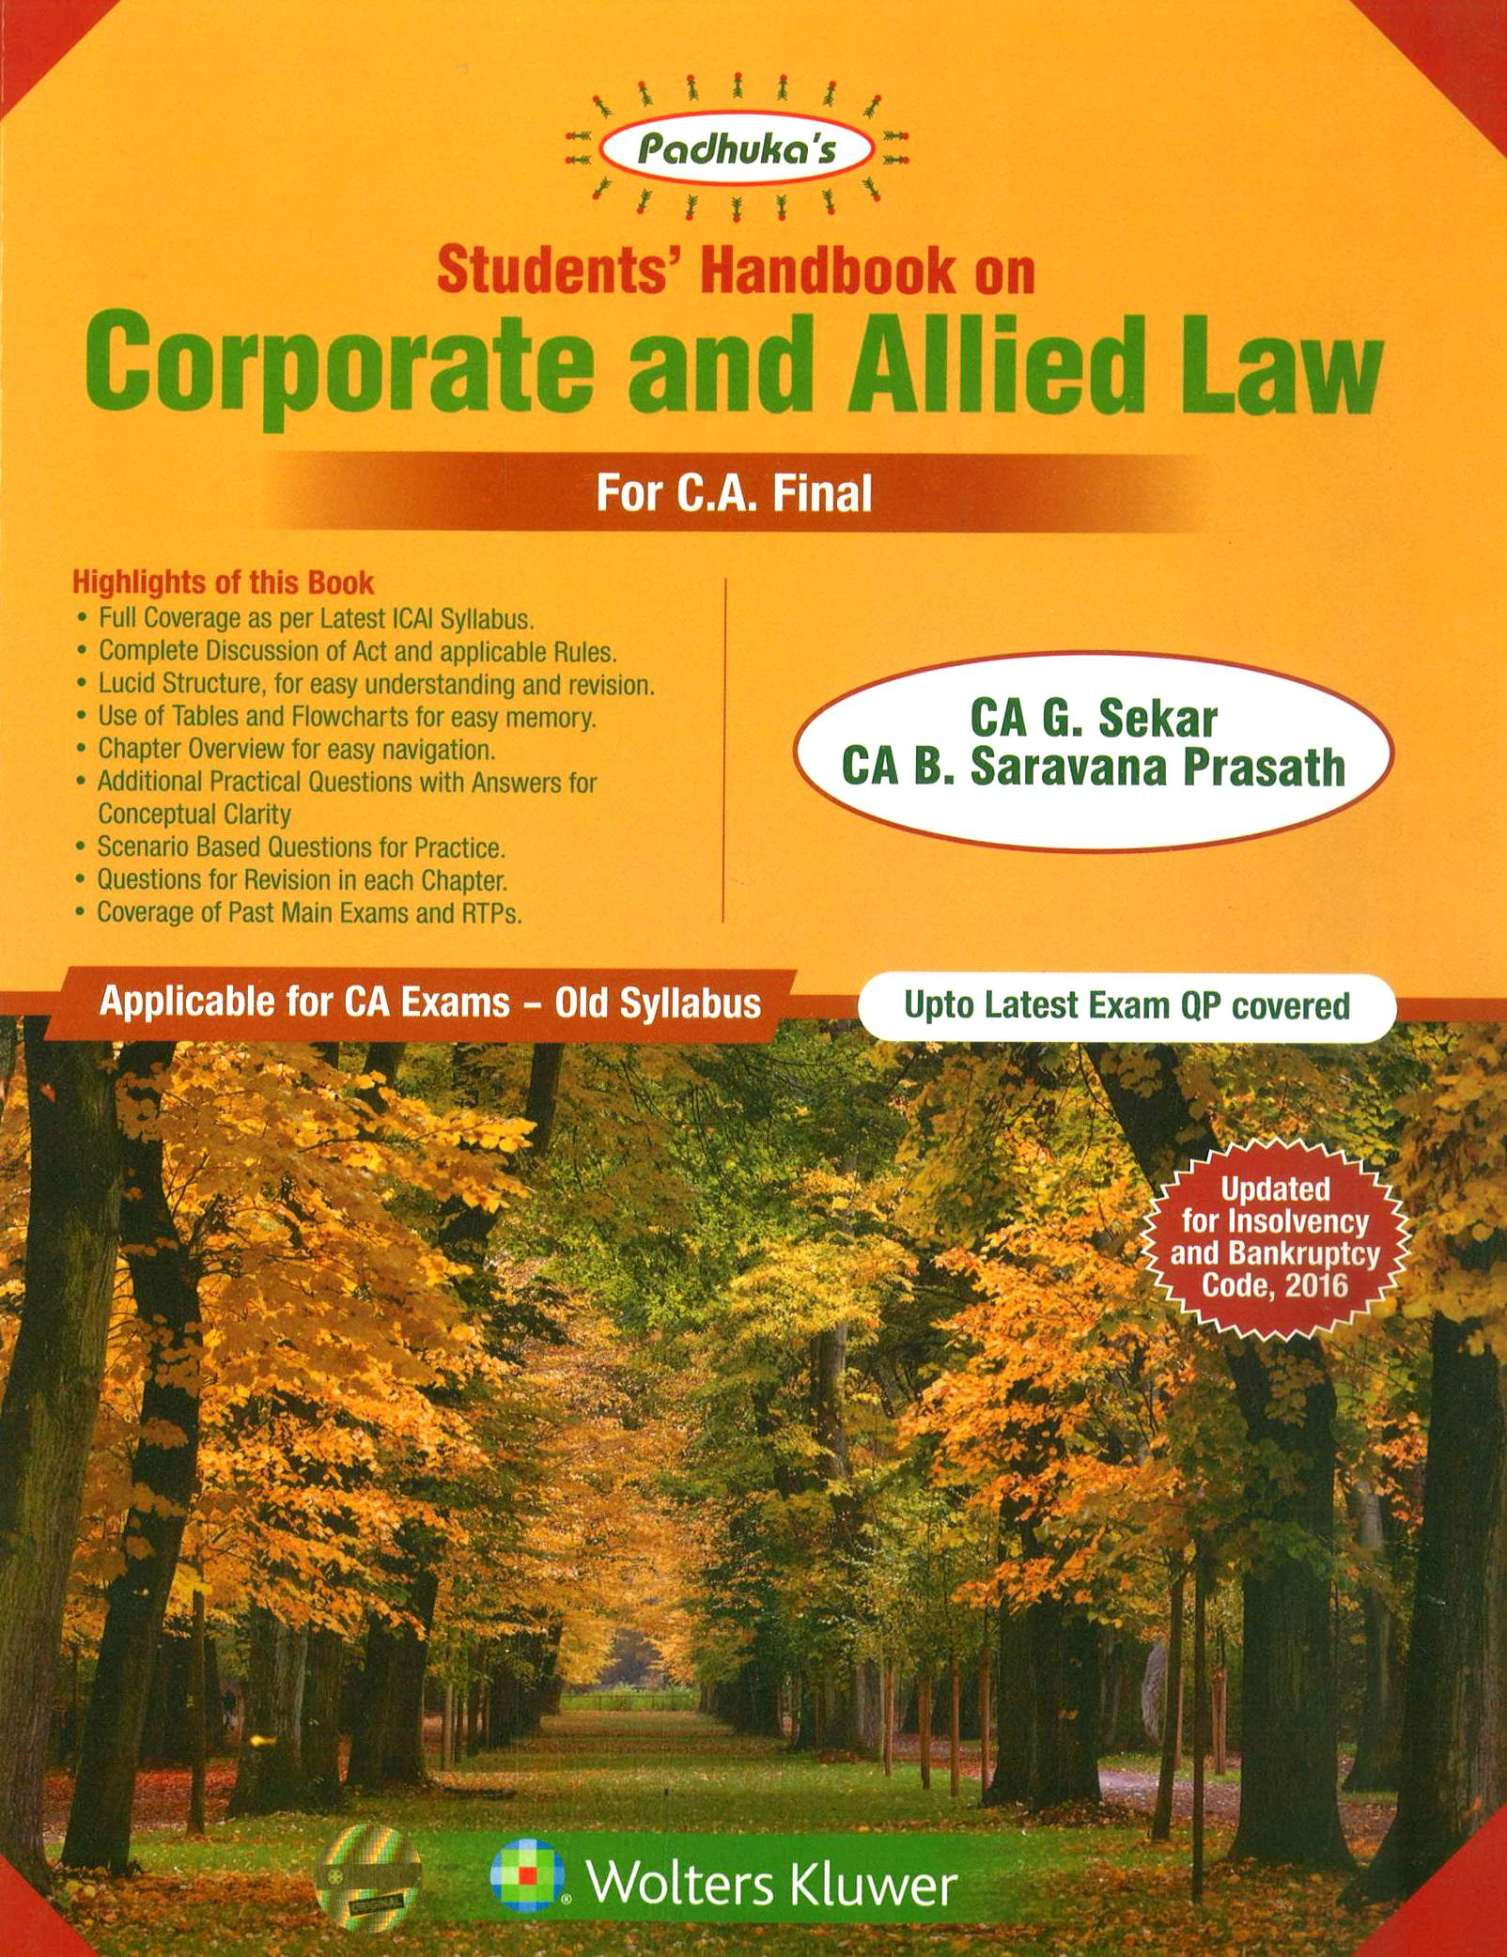 Padhuka's Students Handbook on Corporate and Allied Law CA Final for May 2020 exam by CA G. Sekar and CA B. Saravana Prasath (Wolters Kluwer Publishing)